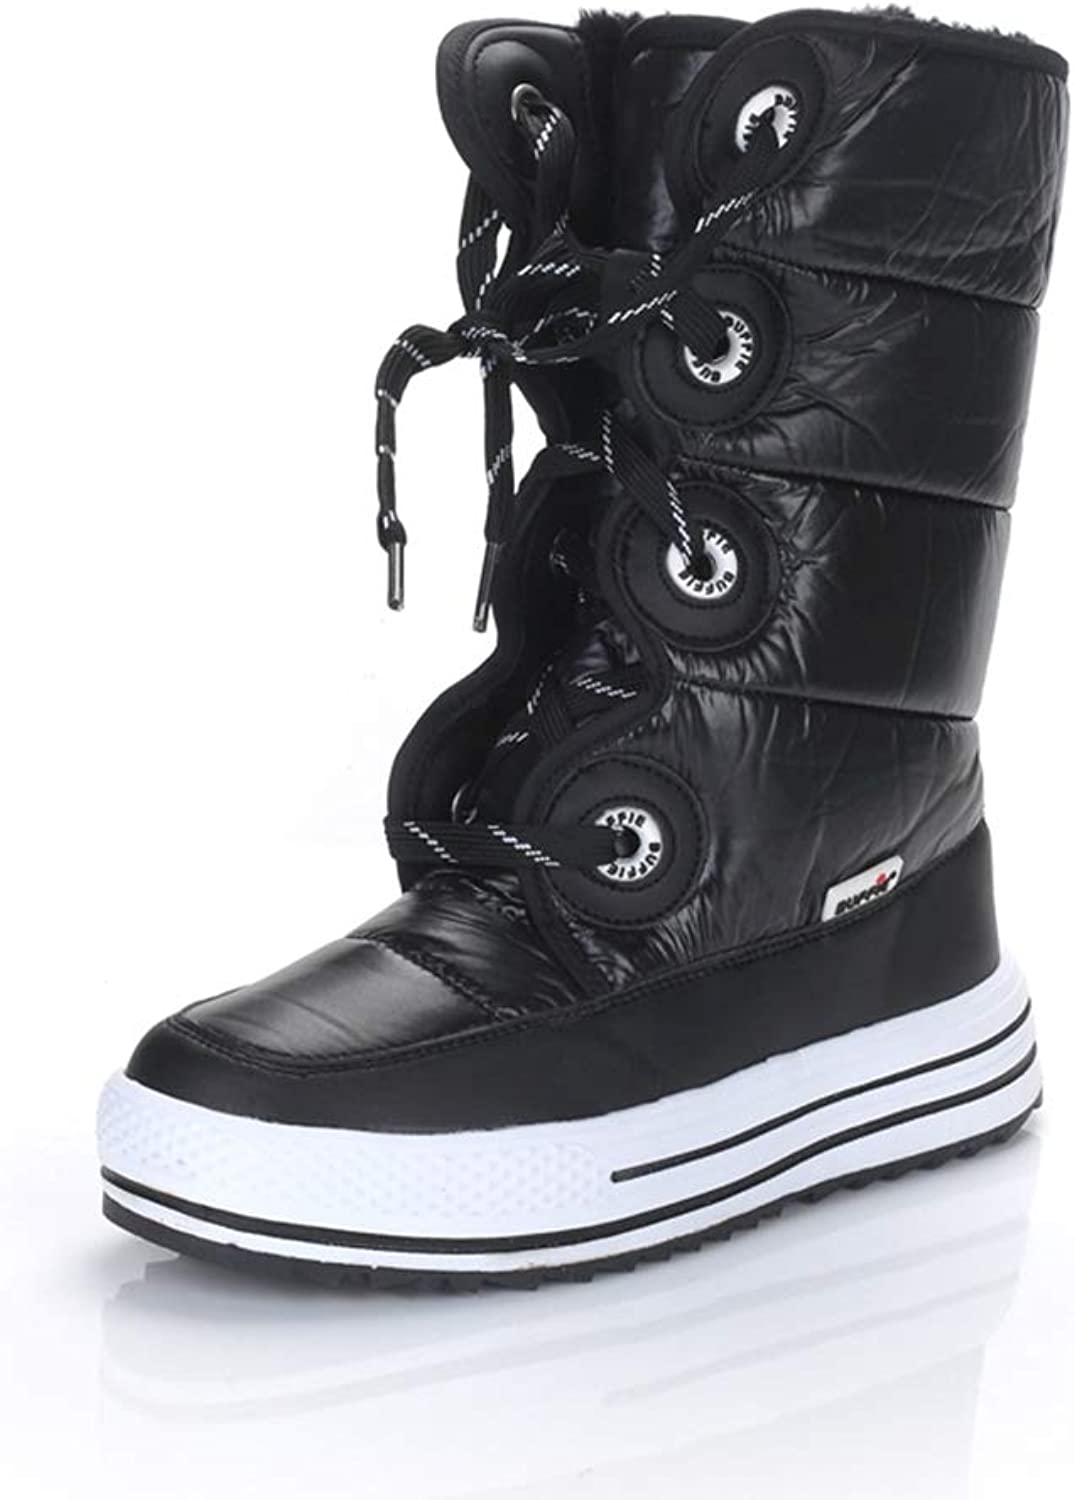 Hoxekle Women Snow Boot Mid Calf Waterproof Thick Platform Cotton Lace Up Black Leather Casual Female Outdoor Hiking Walking shoes